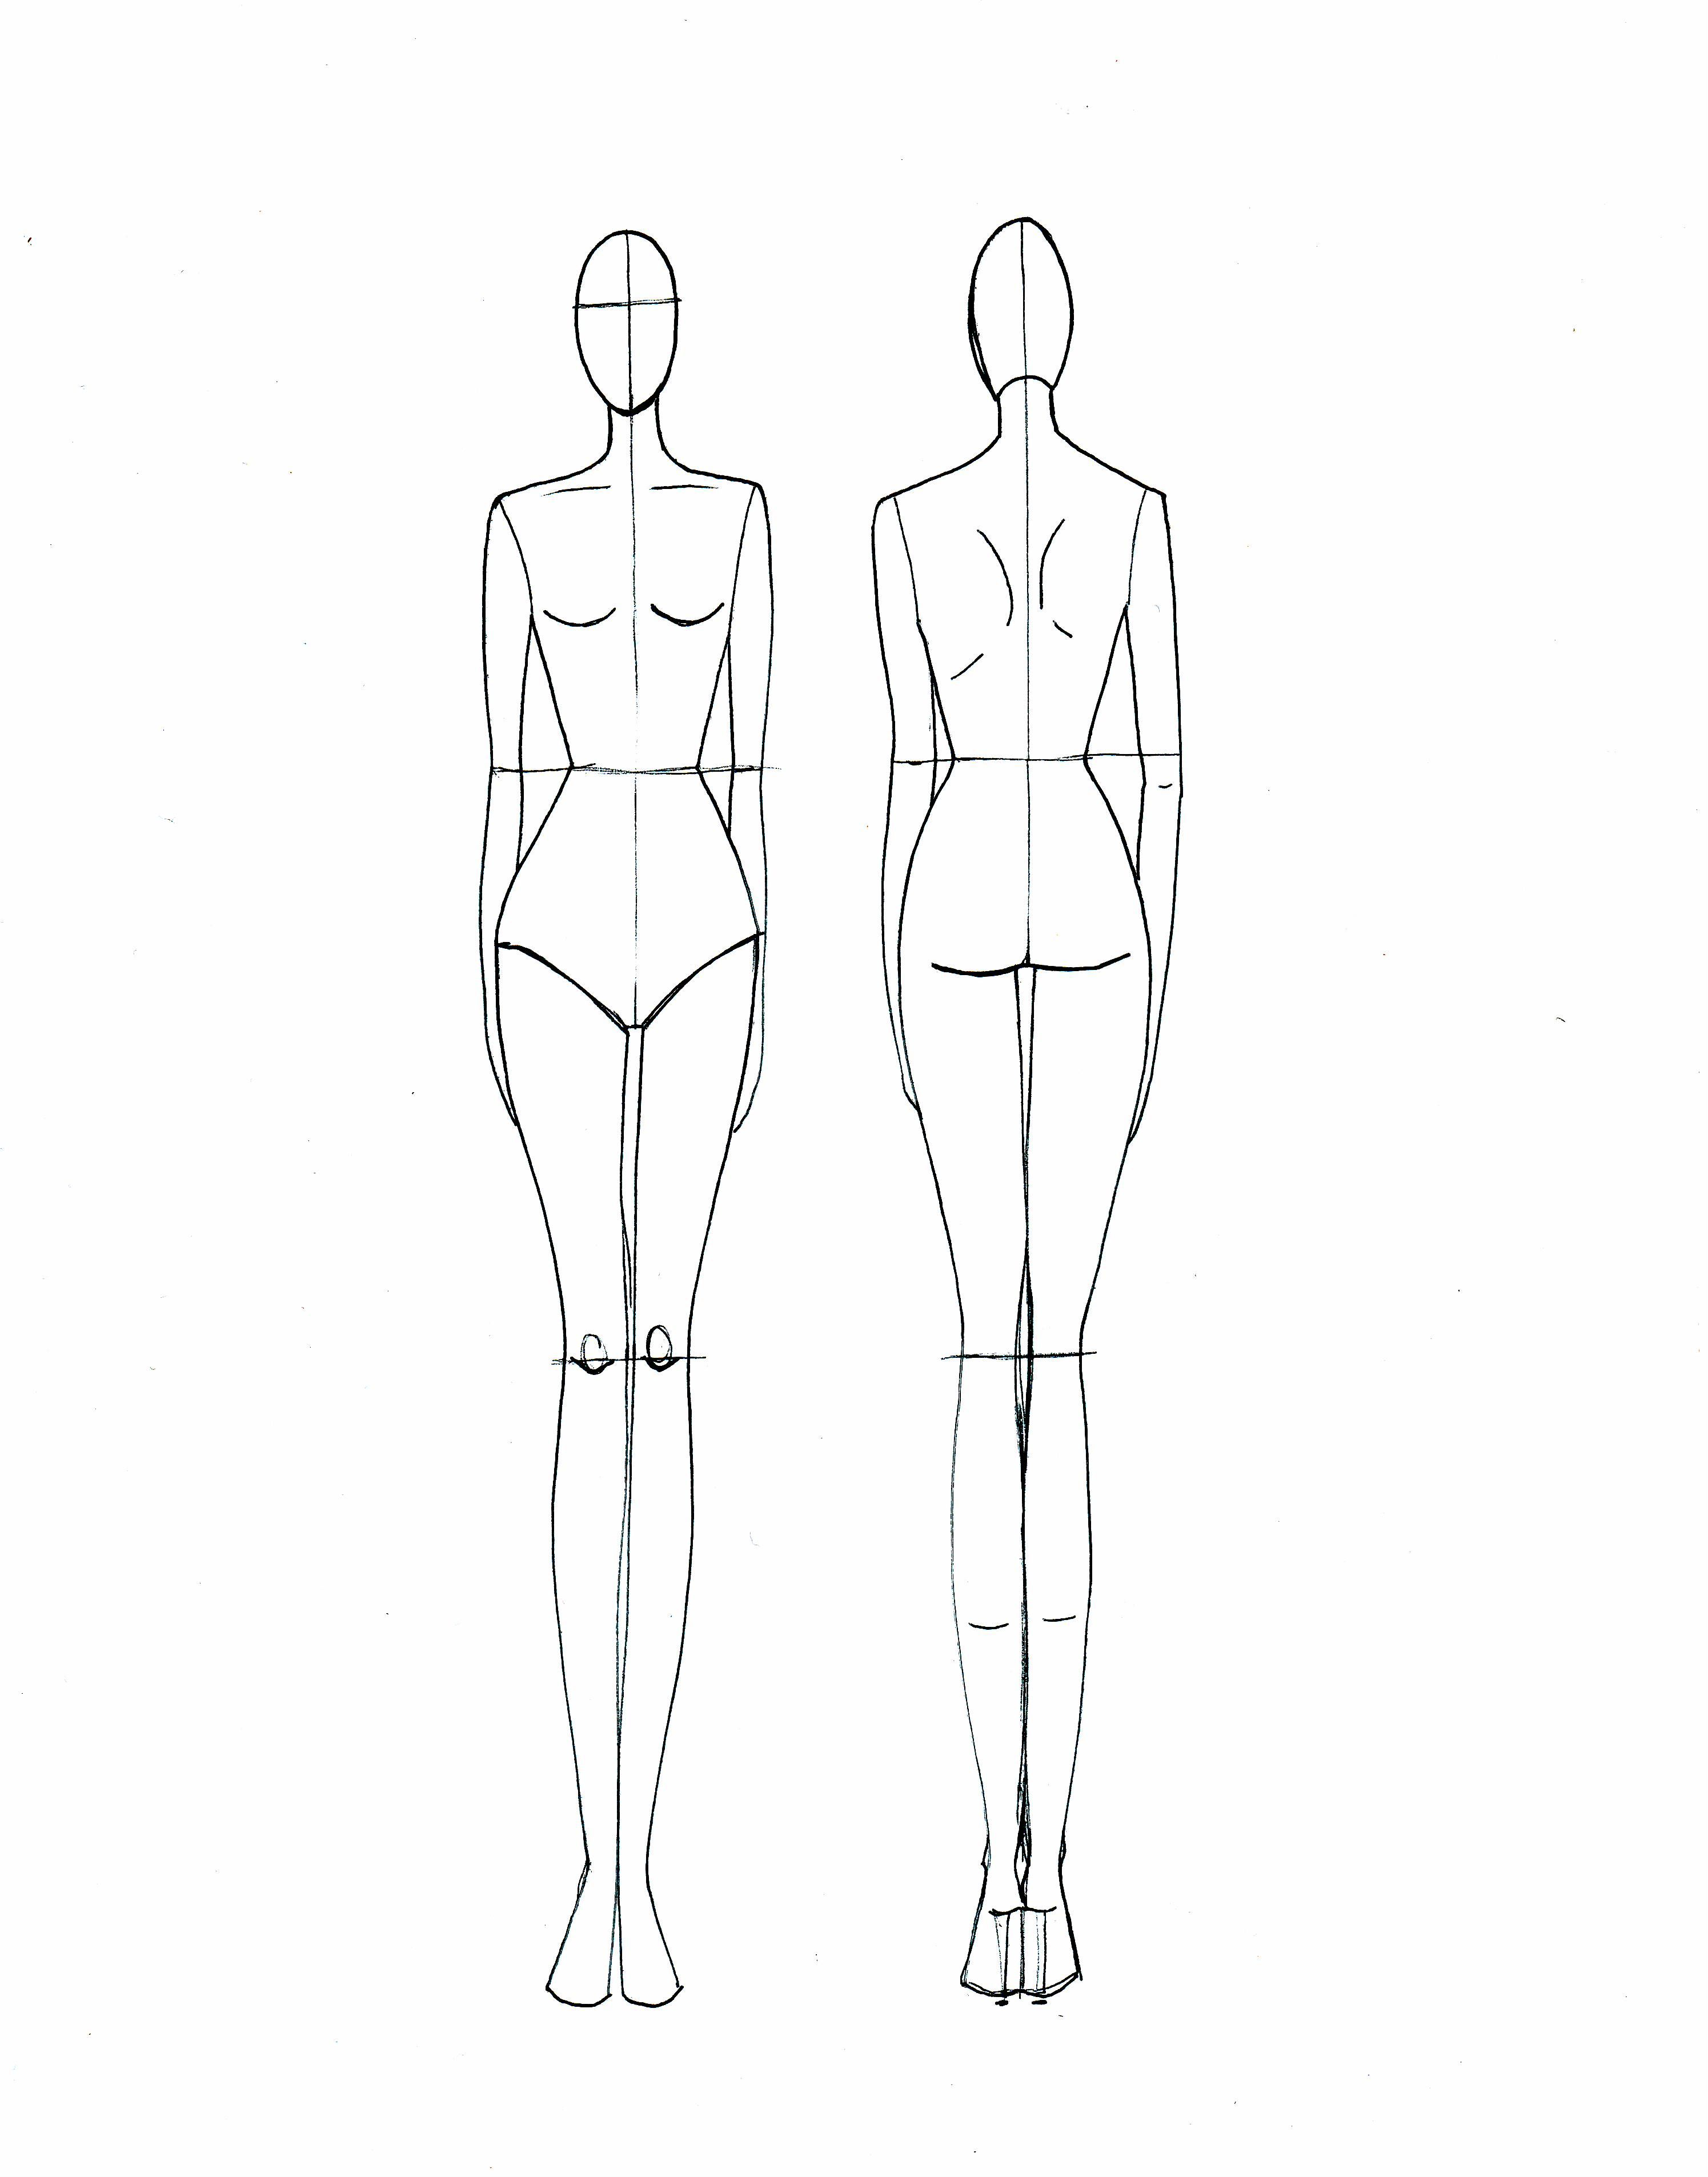 5a2155907235776373ba03580e504dc5 fashion drawing template design, sketching and body template on how to do templates